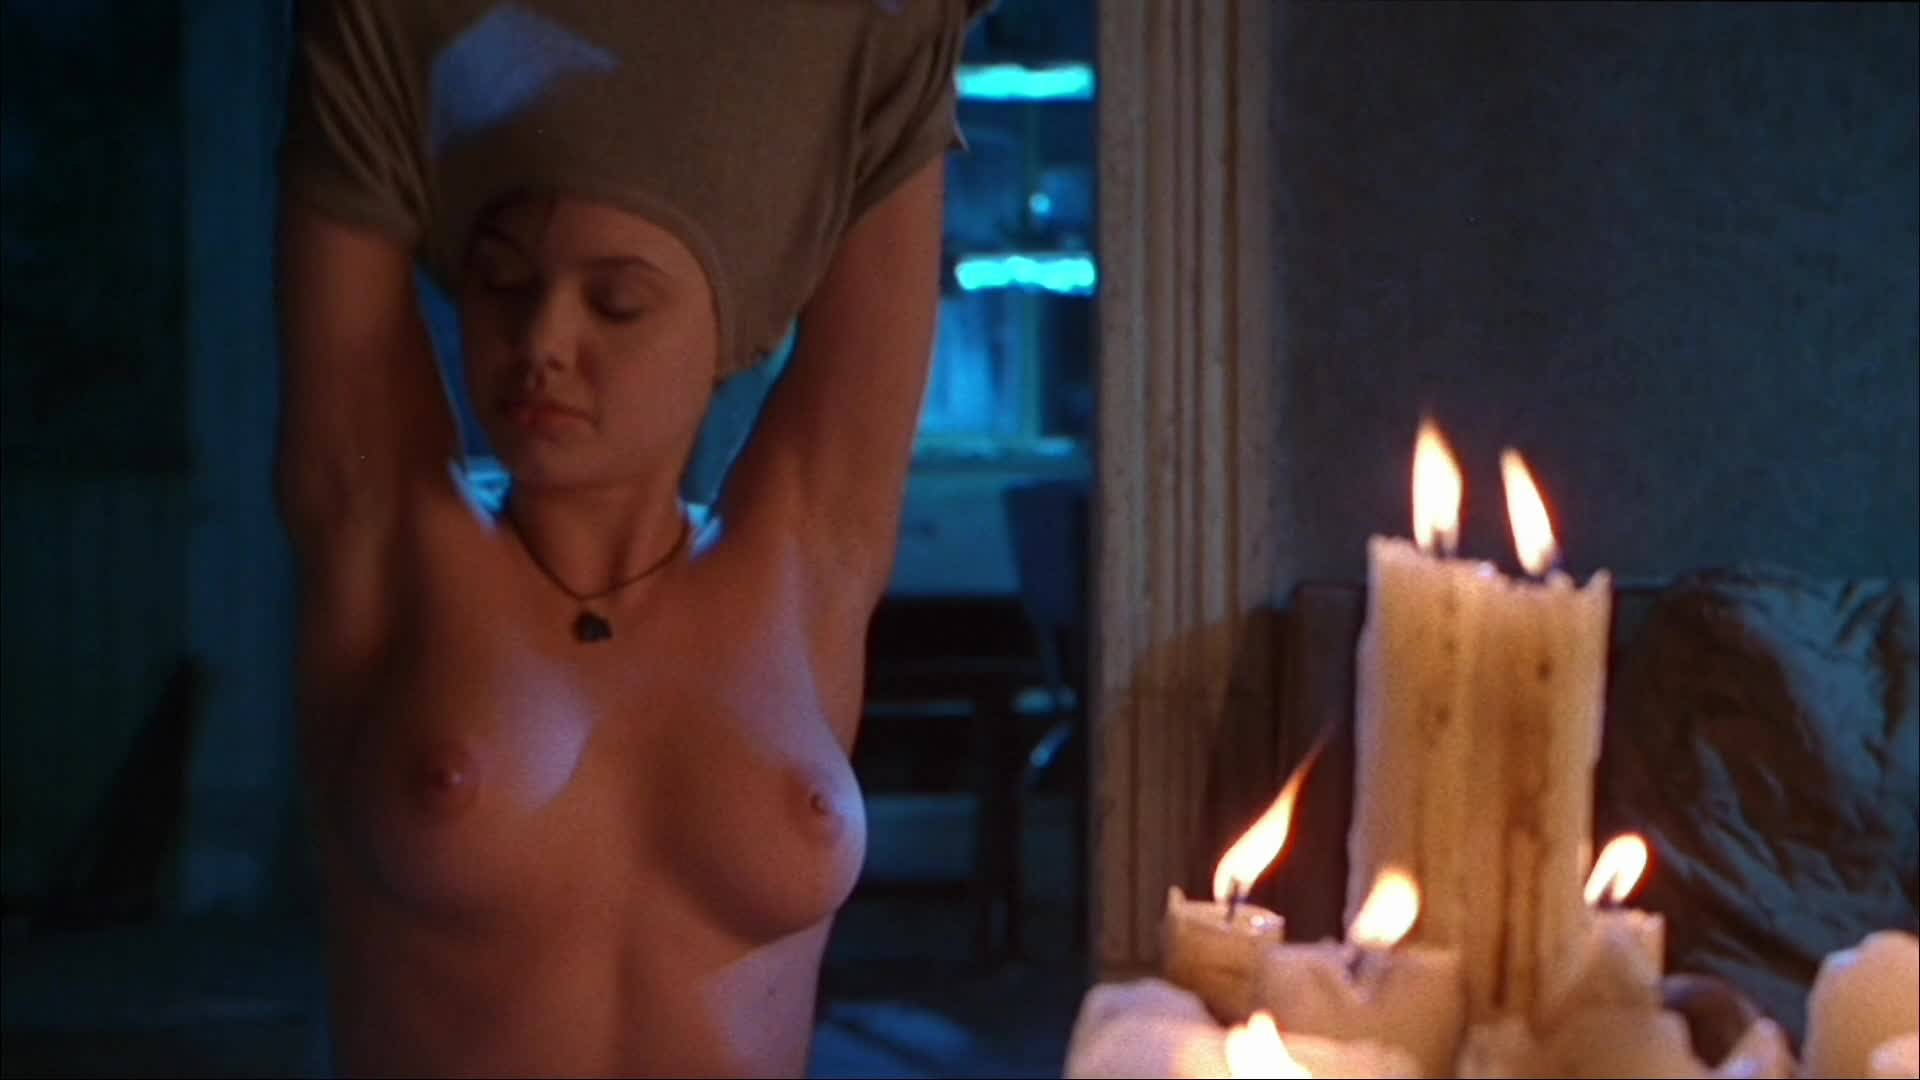 A-lister with most nude scenes - Angelina Jolie